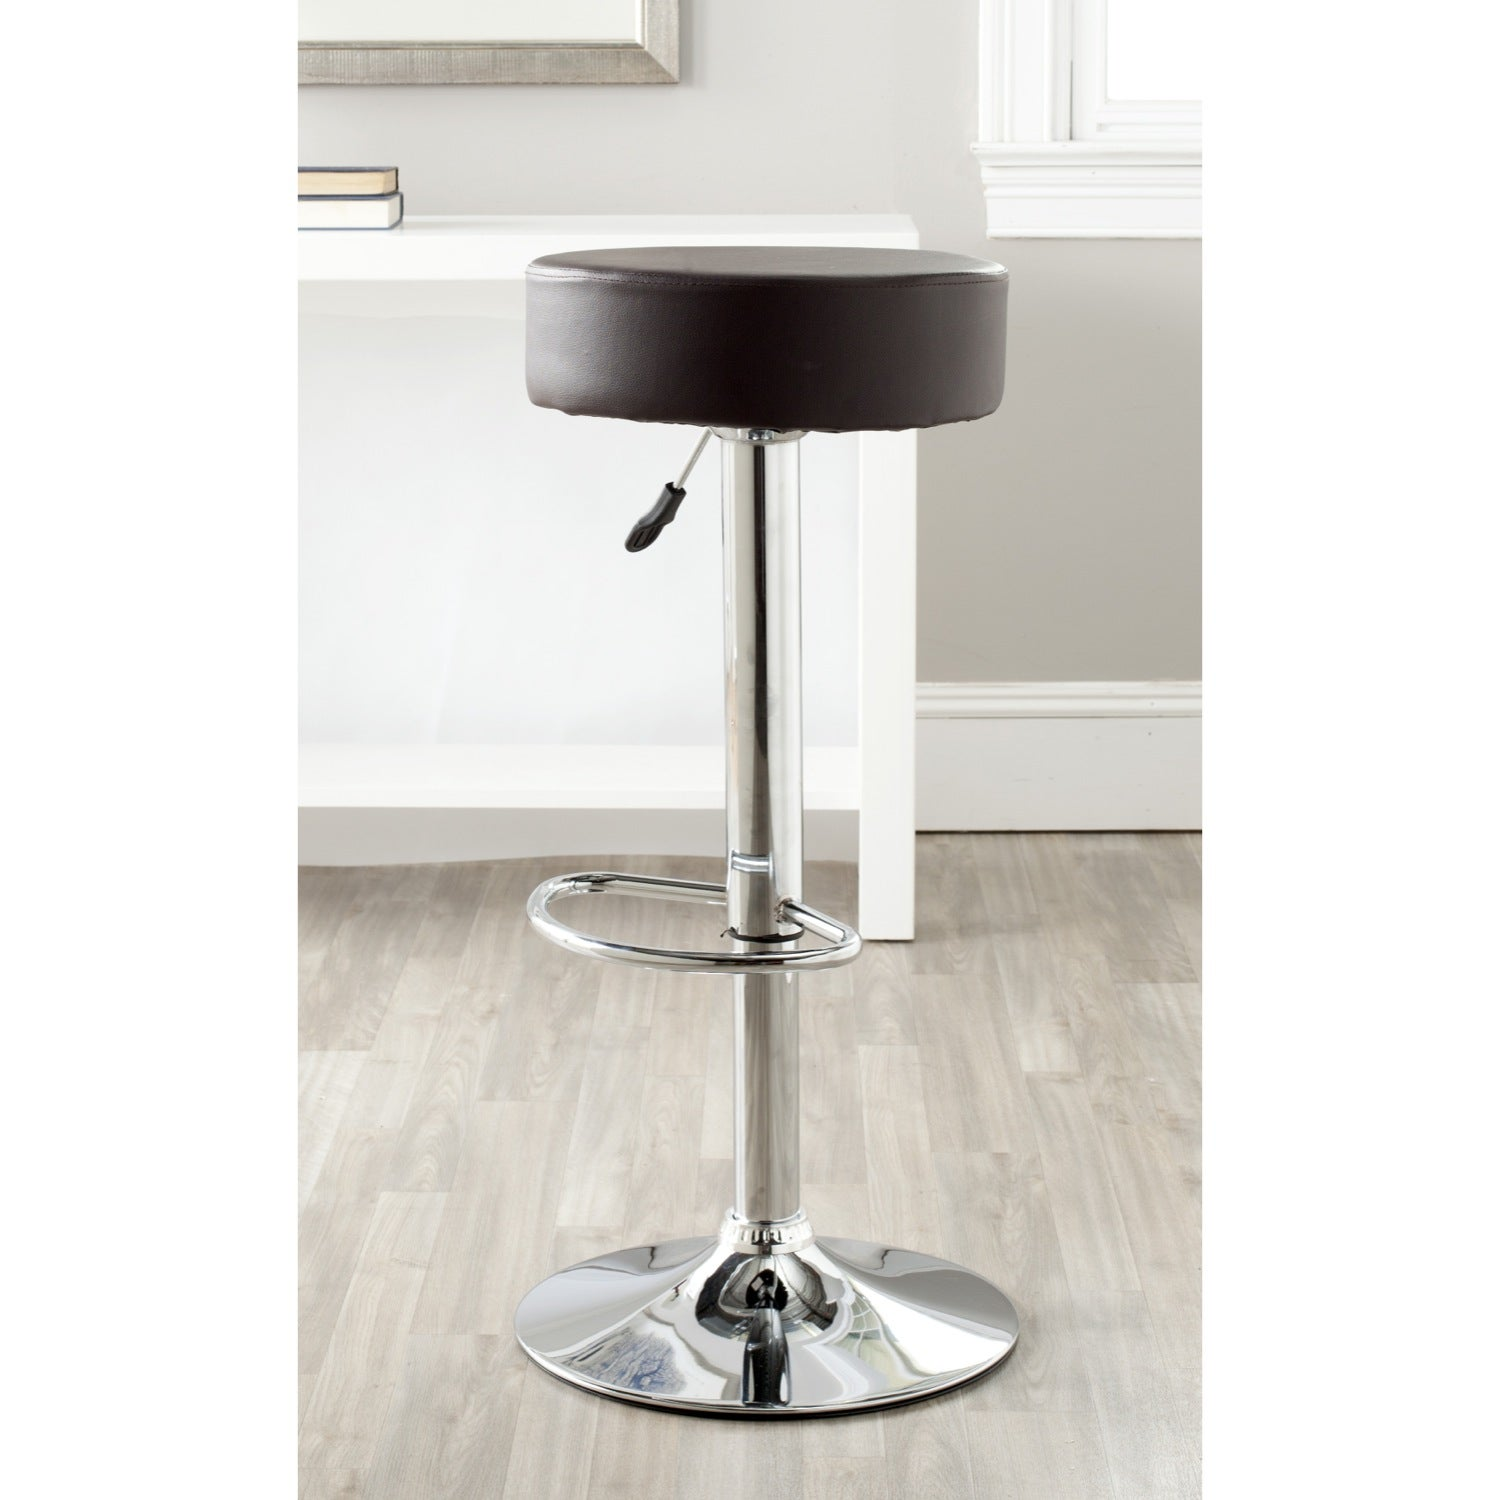 Safavieh Jute Brown Adjustable Height Swivel Bar Stool